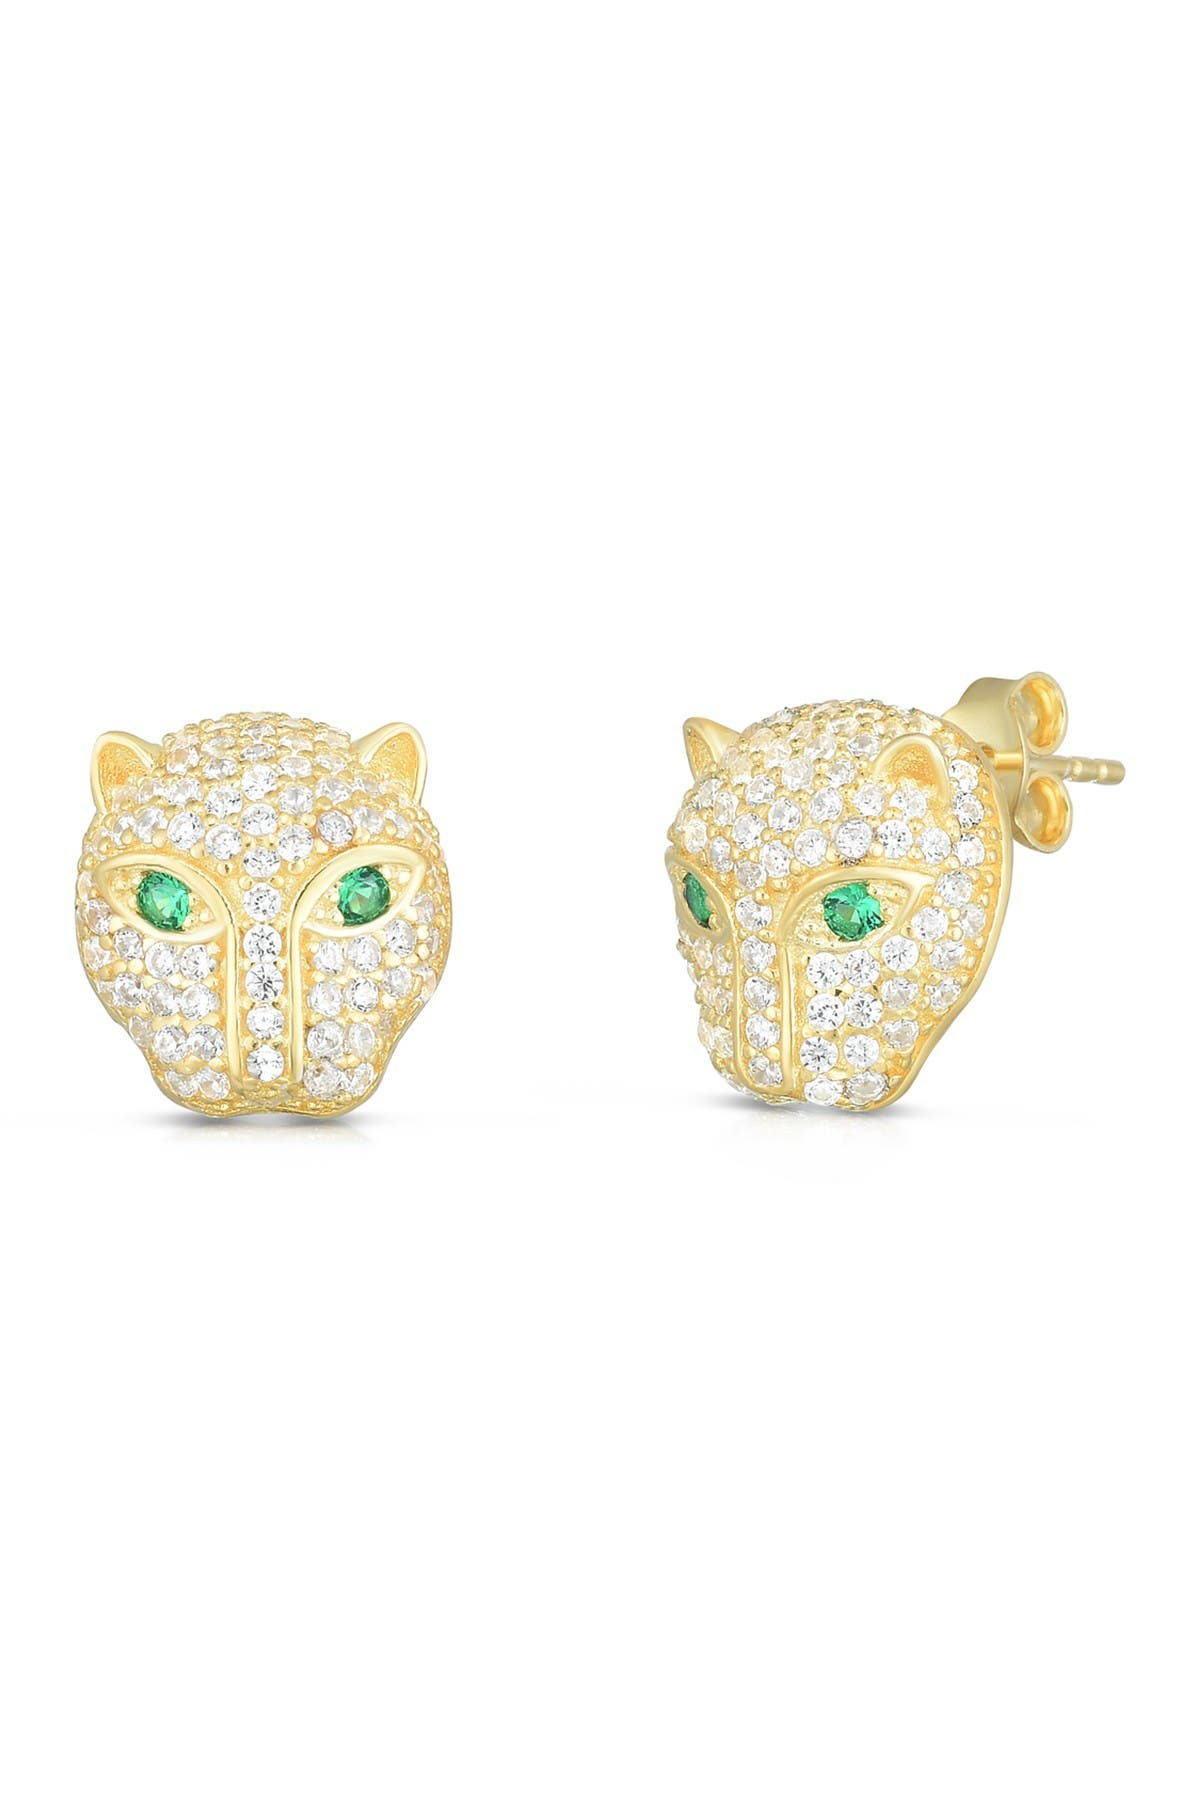 Image of Sphera Milano 14K Yellow Gold Plated Sterling Silver Pave CZ Panther Stud Earrings